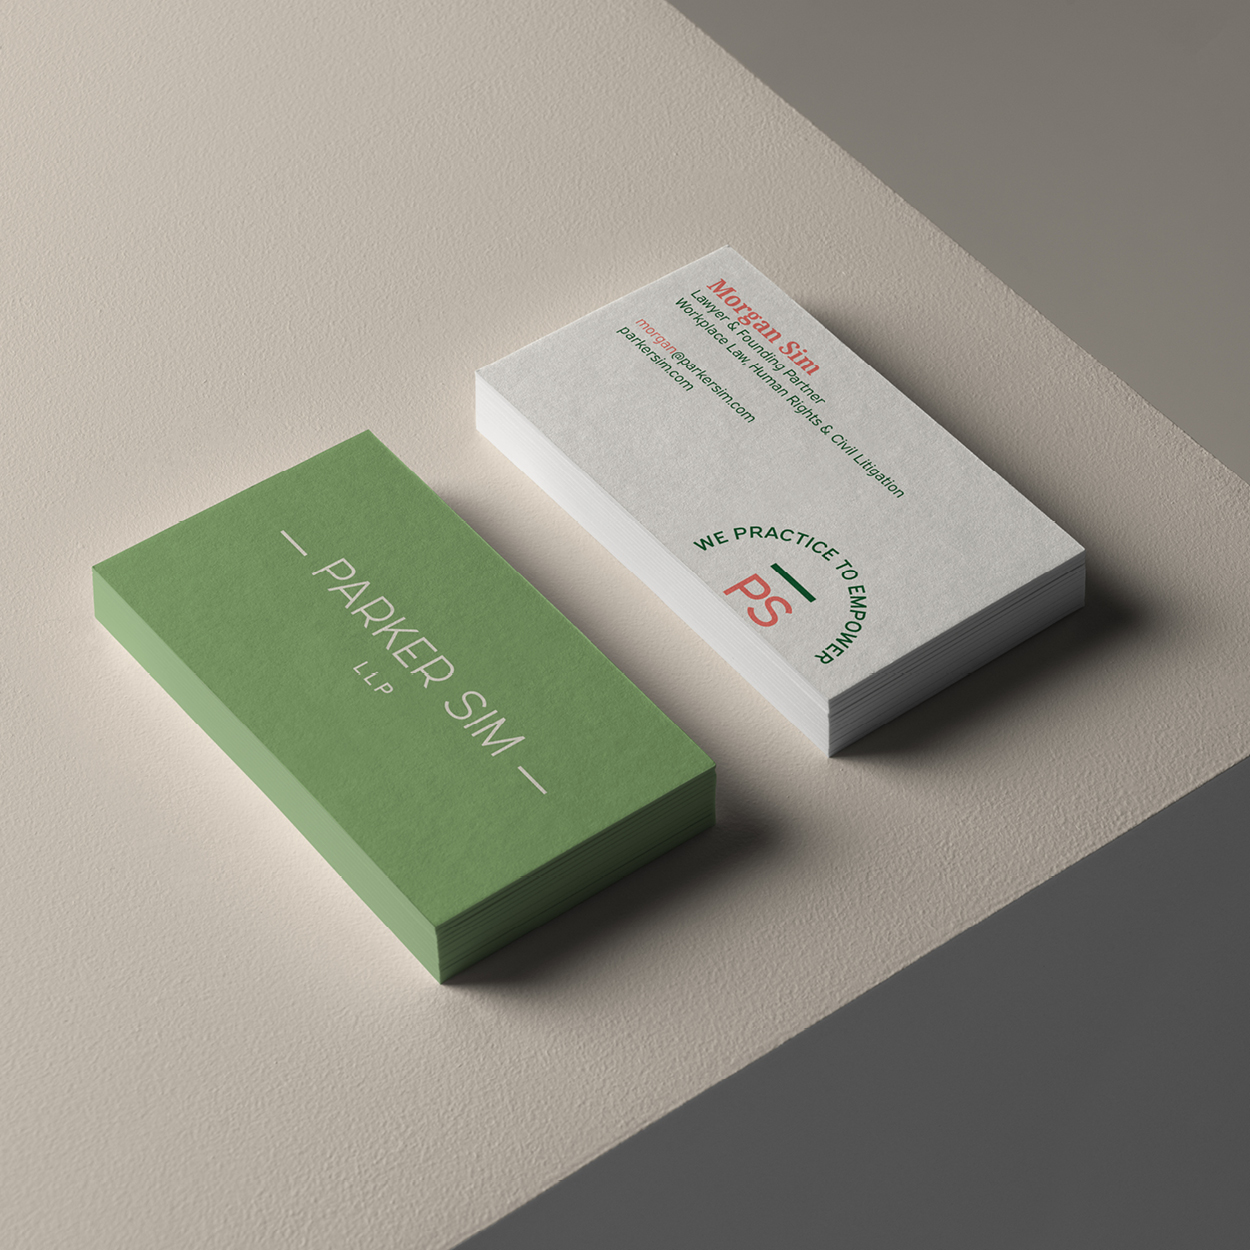 Parker Sim business cards